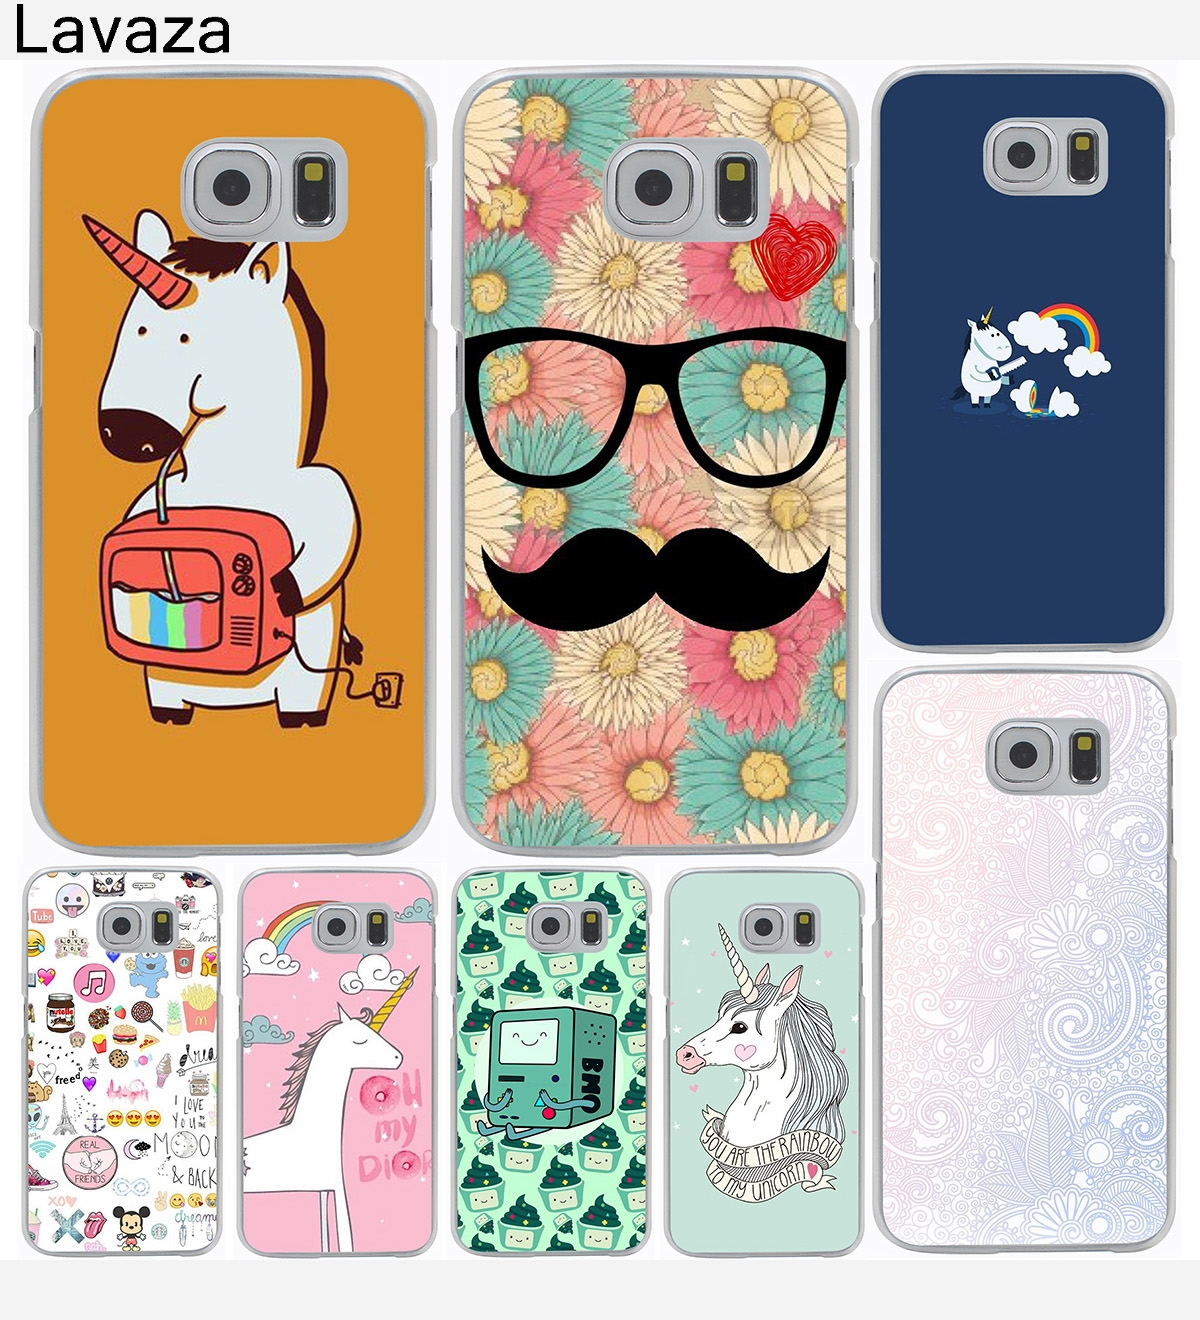 Unicorn Saw Clouds Rainbow Funny Hard Cover Case for Galaxy S3 S4 S5 & Mini S6 S7 S8 Edge Plus